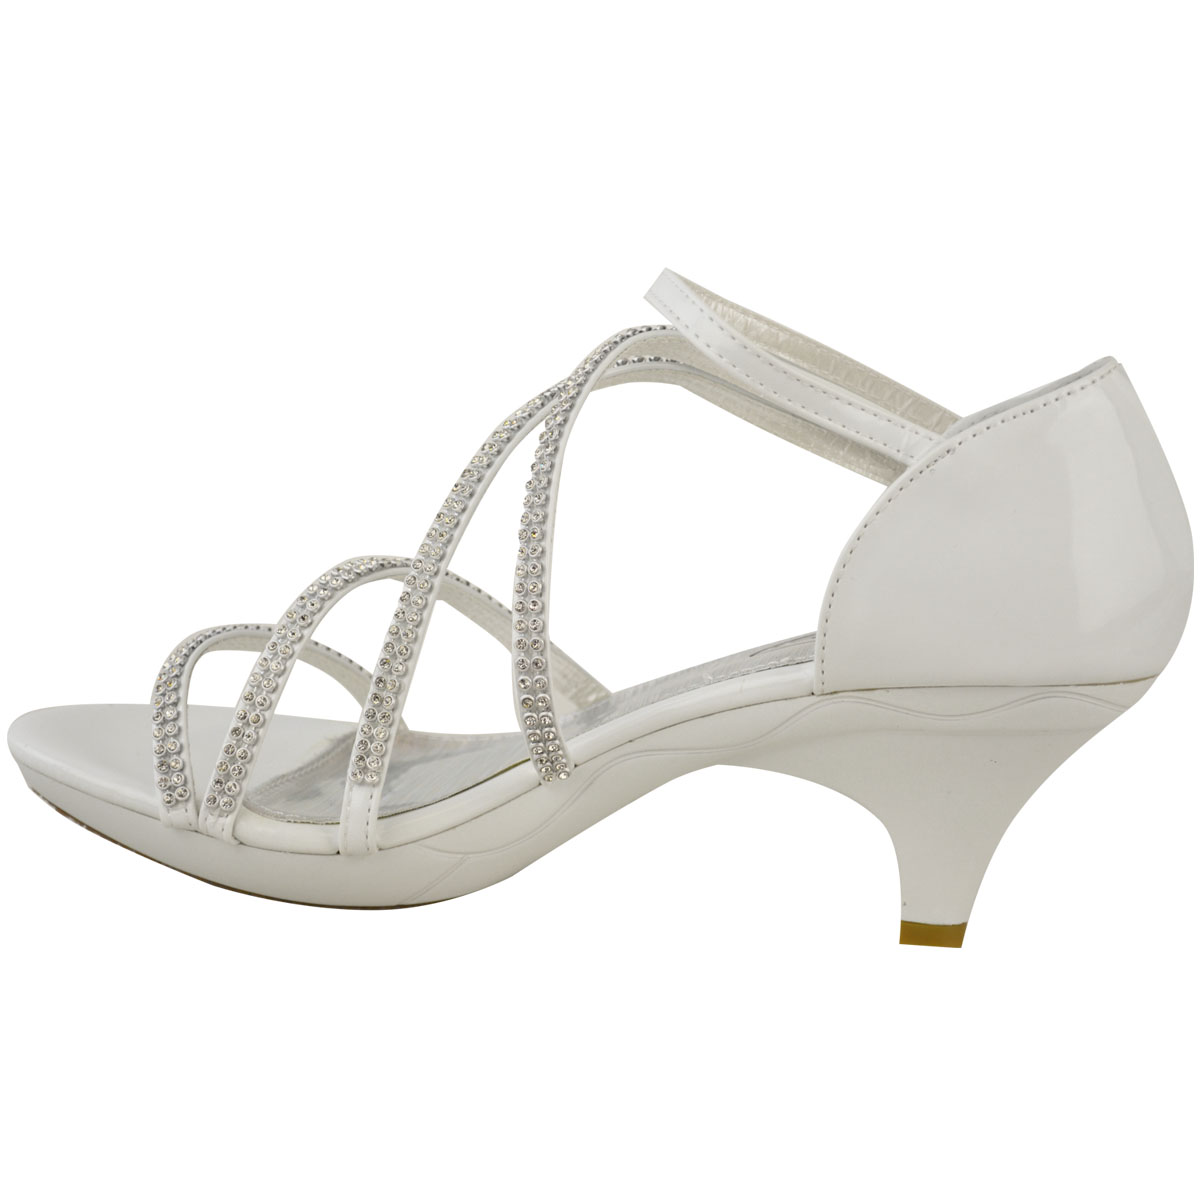 New Womens Ladies Girls Low Heel Bridal Wedding Sandal ...